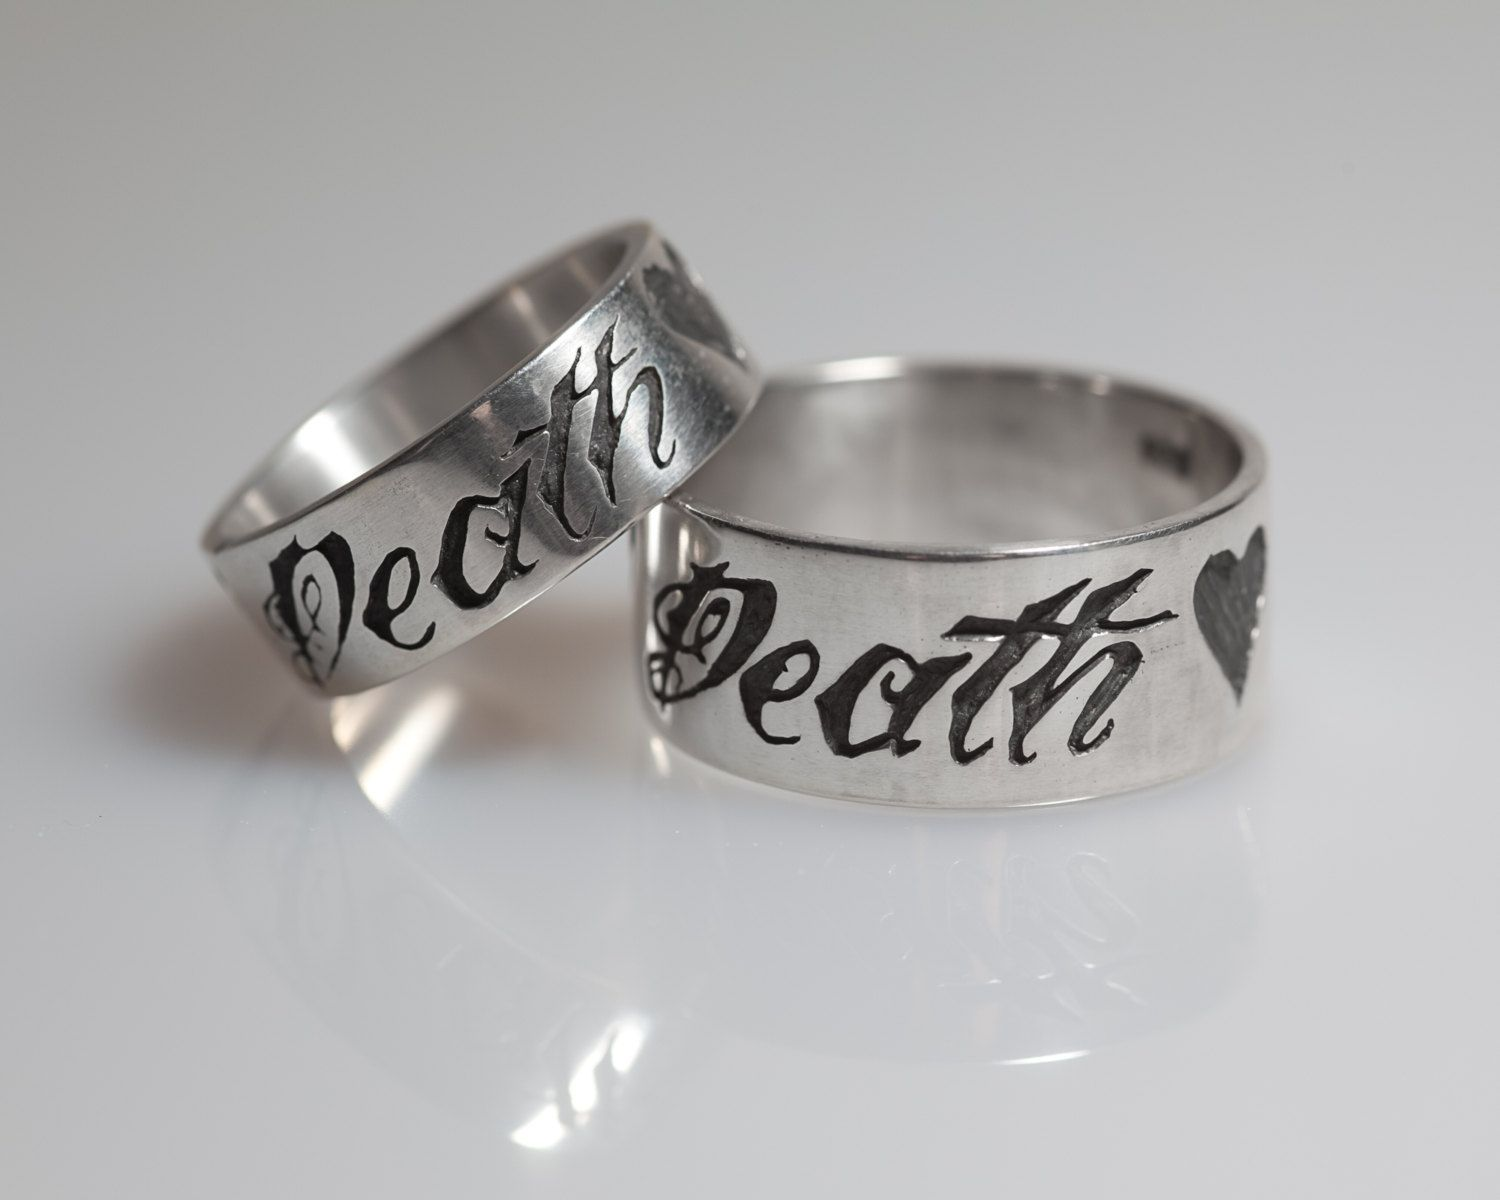 sterling till death his and hers ring set with anchor and heart his and hers wedding rings - Wedding Ring Set His And Hers